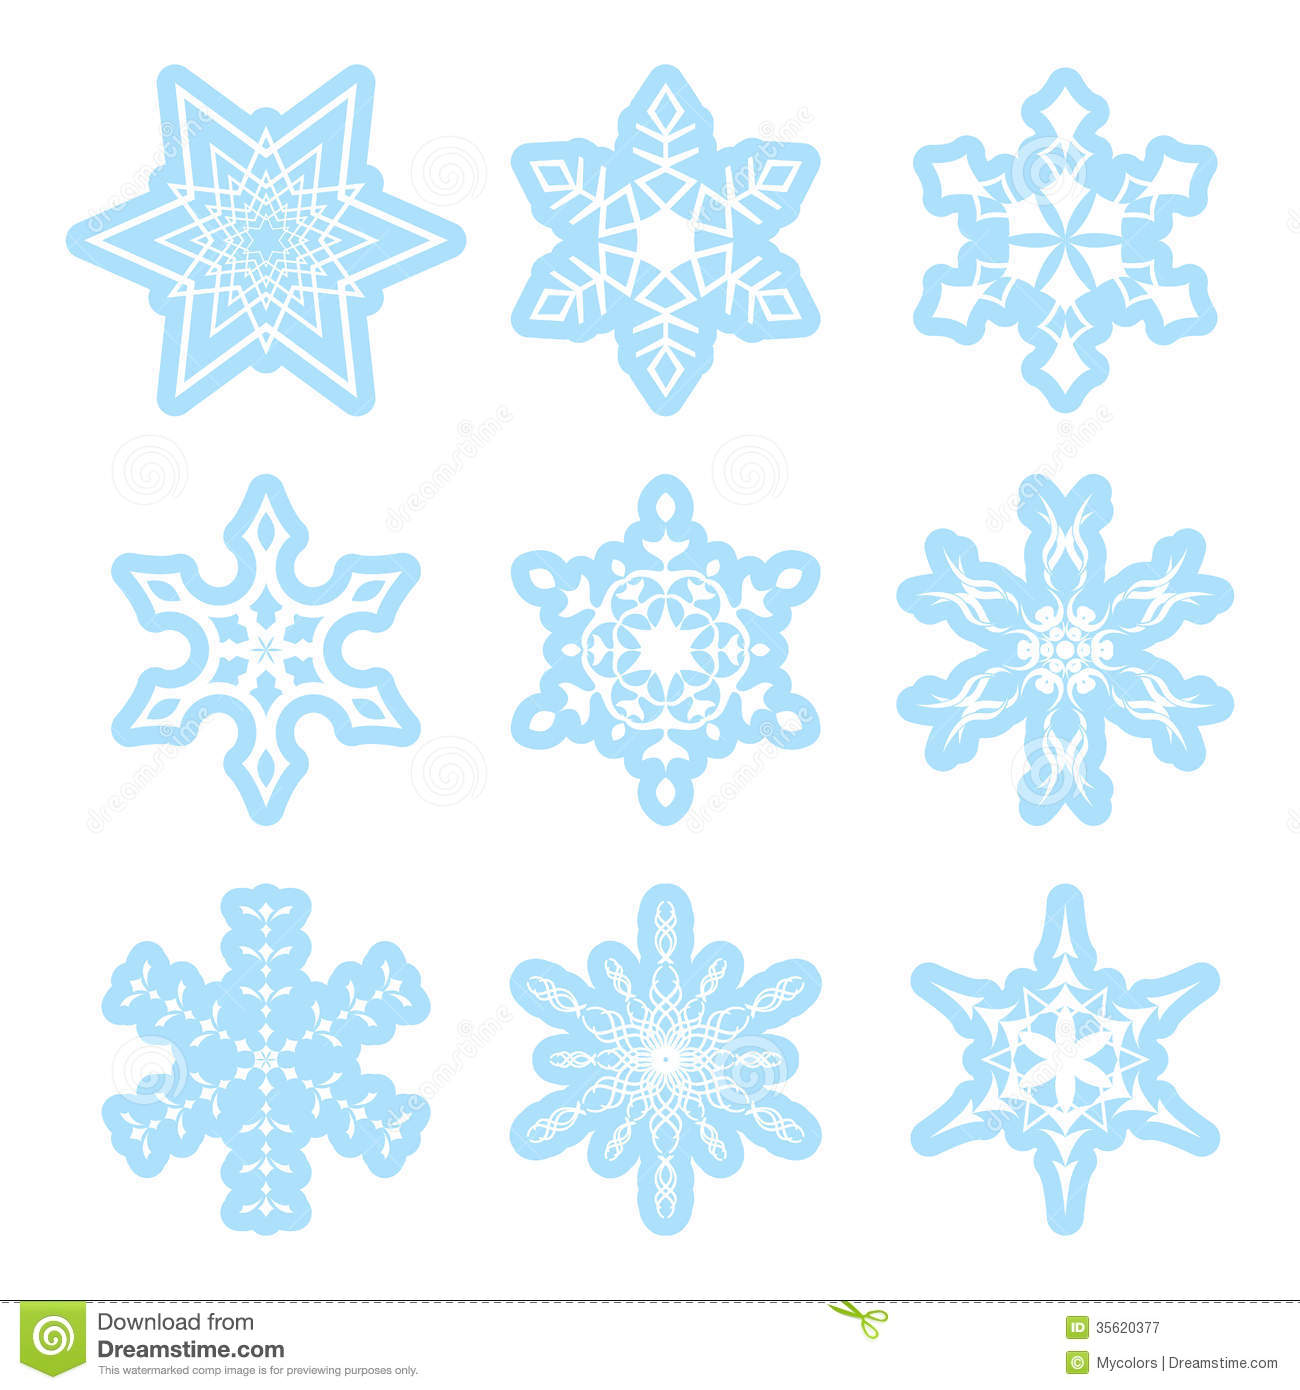 White Snowflake Vector Free Download Blue and white snowflakesWhite Snowflake Vector Free Download